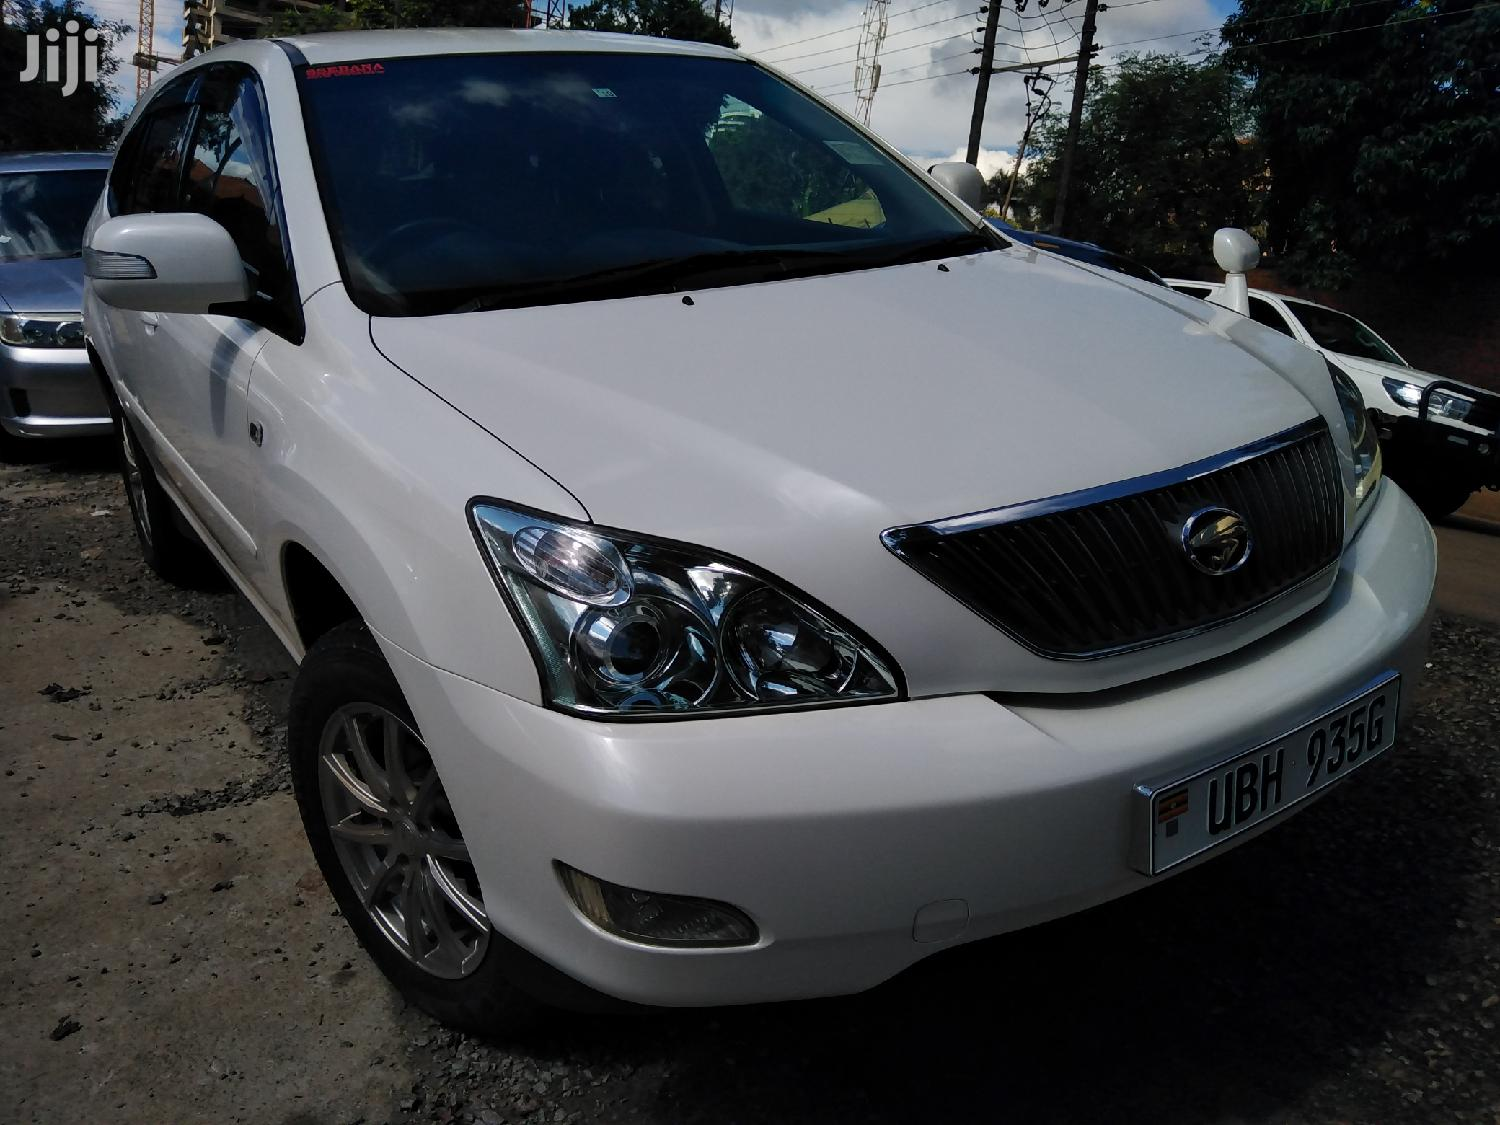 Archive: New Toyota Harrier 2006 White